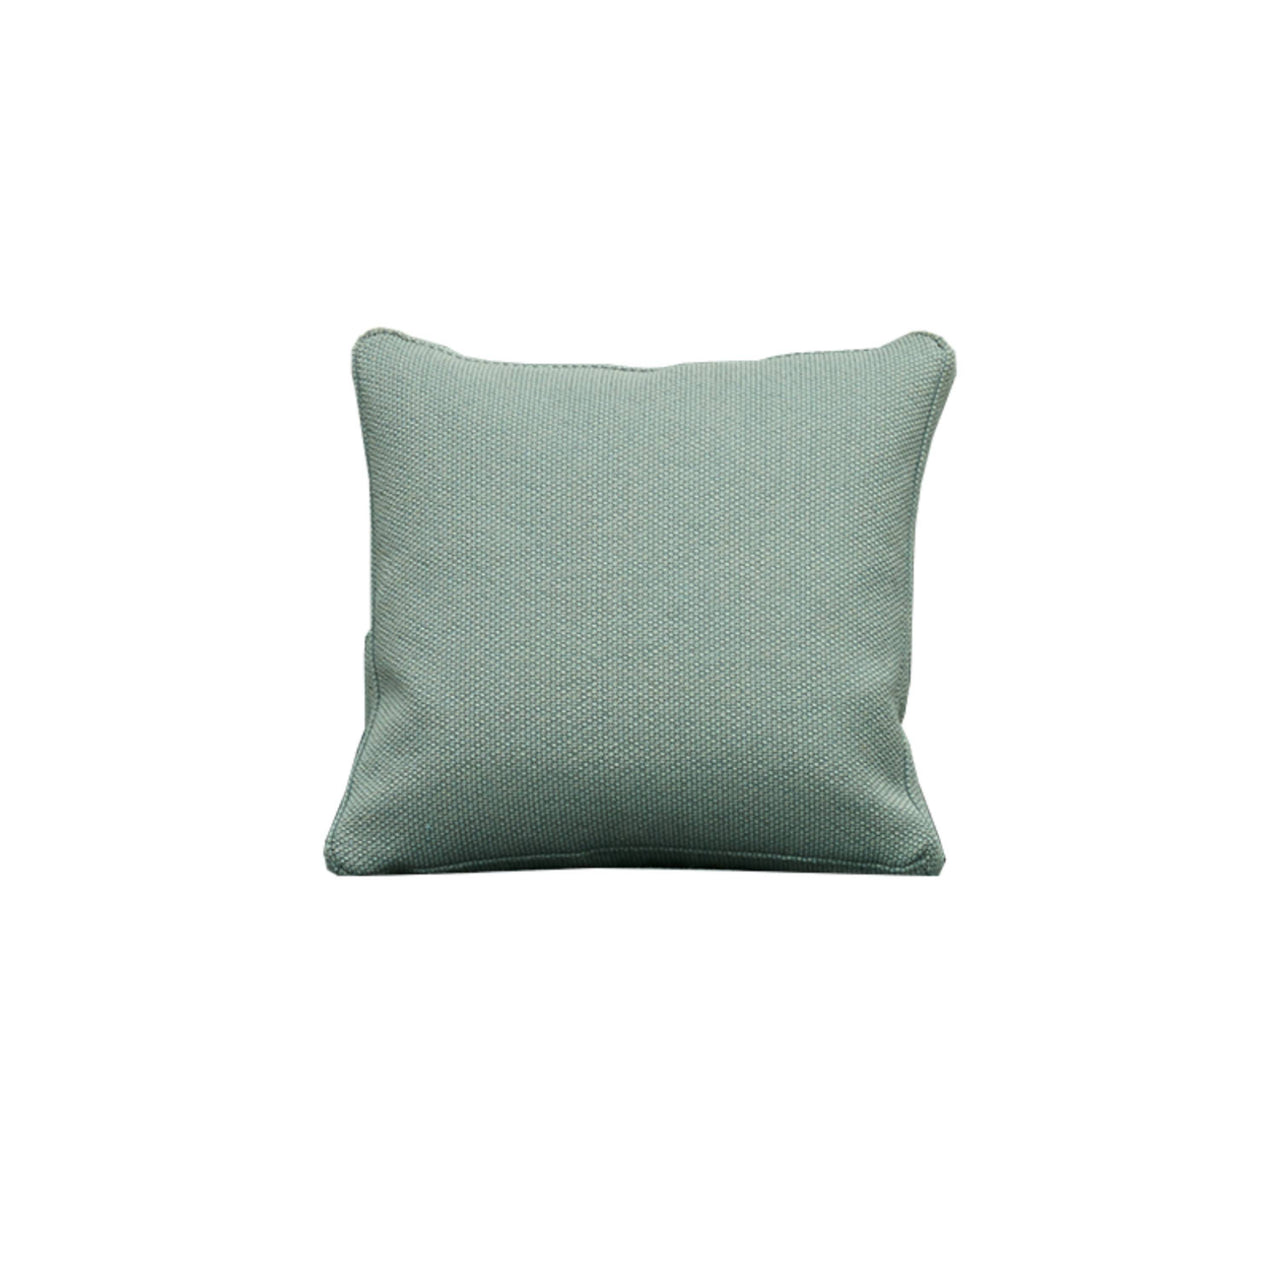 Ling Loose Cushion: Small